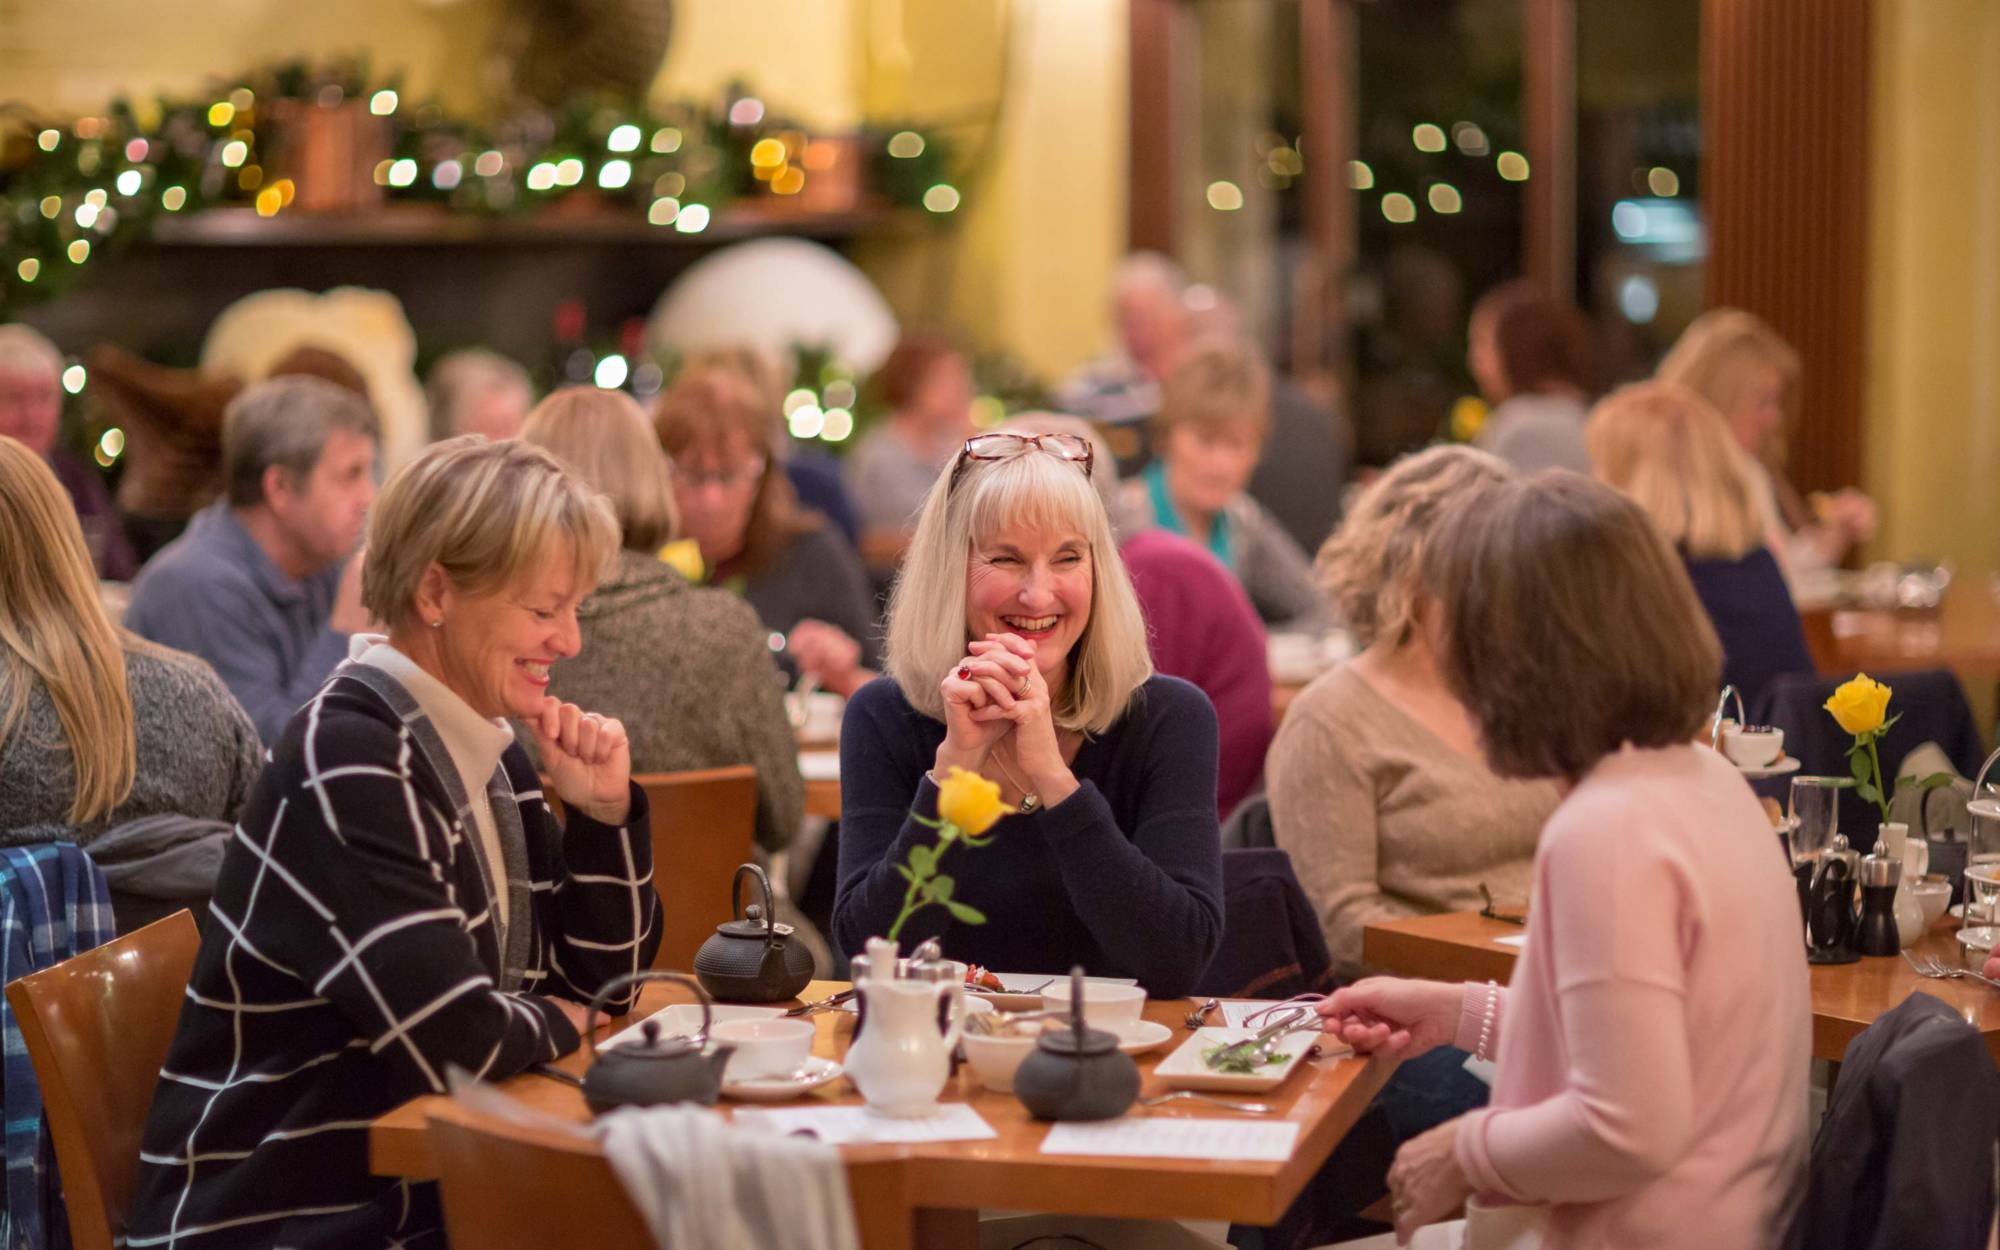 Visitors enjoying a festive afternoon tea in the Manor Restaurant